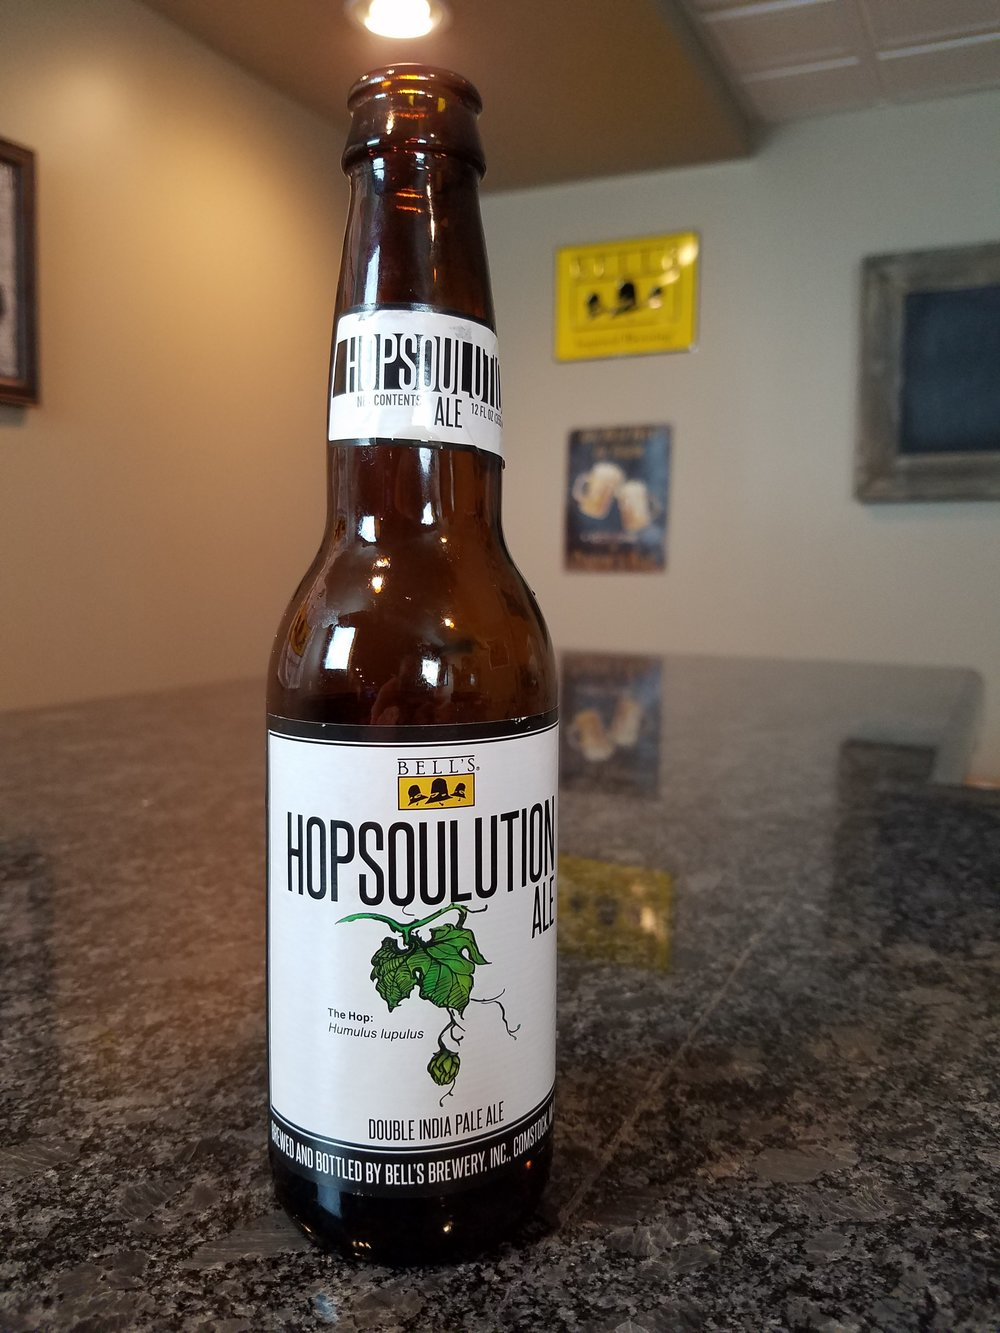 Hopsoulution 8% ABV - Want to see the Video review? Click on the image.